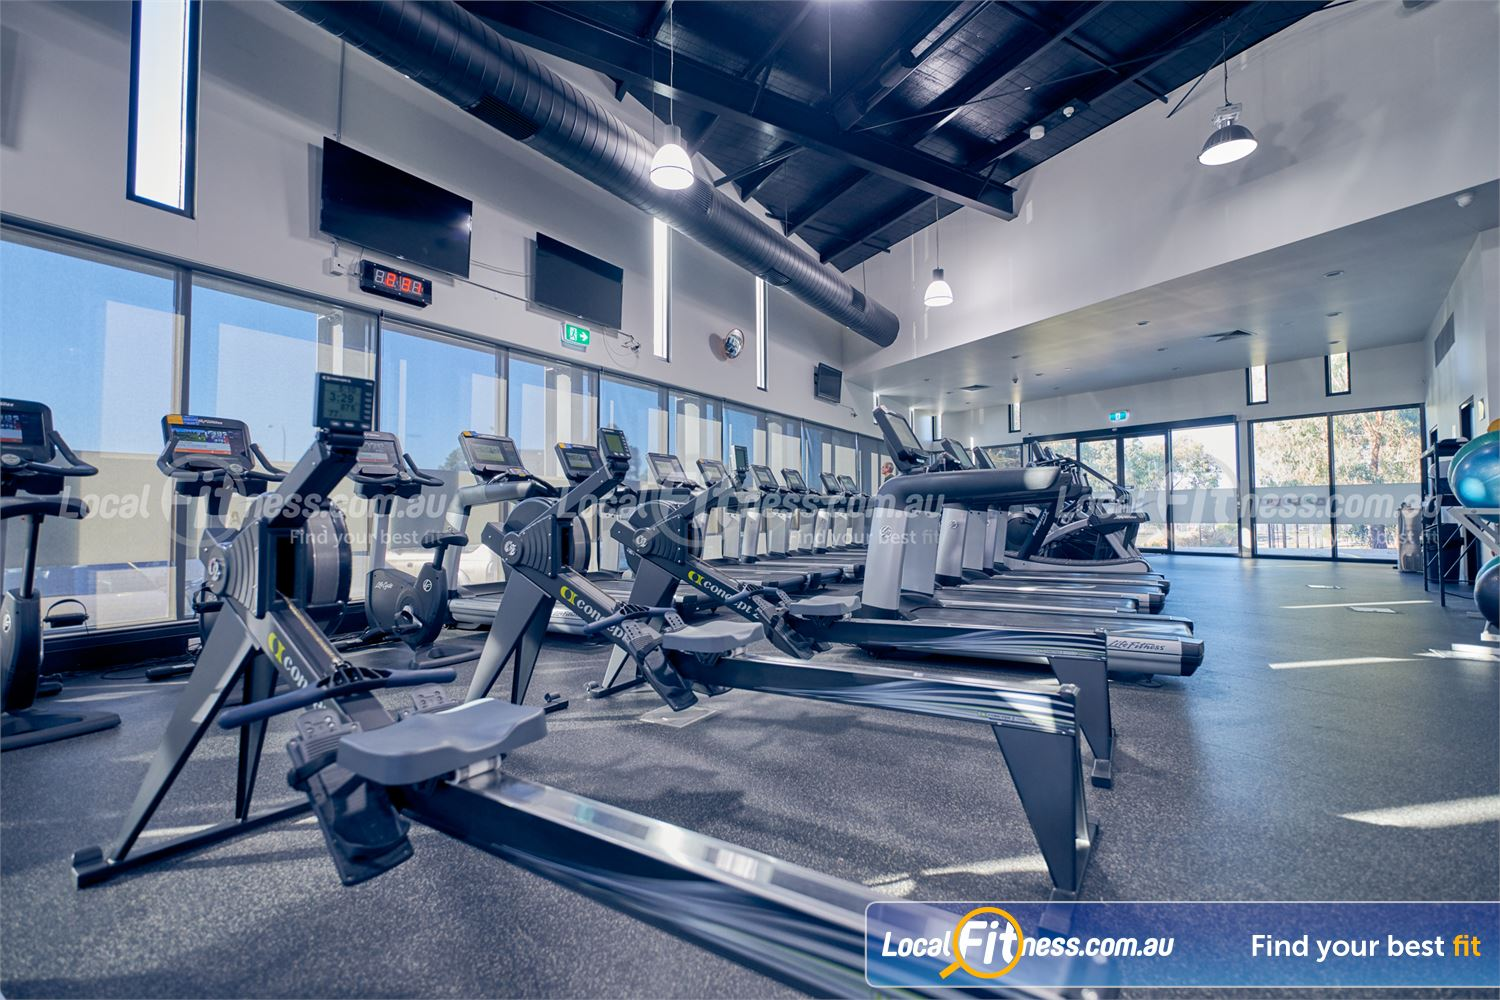 Maribyrnong Aquatic Centre Near Essendon West Our expanded Maribyrnong gym includes state of the art cardio equipment.